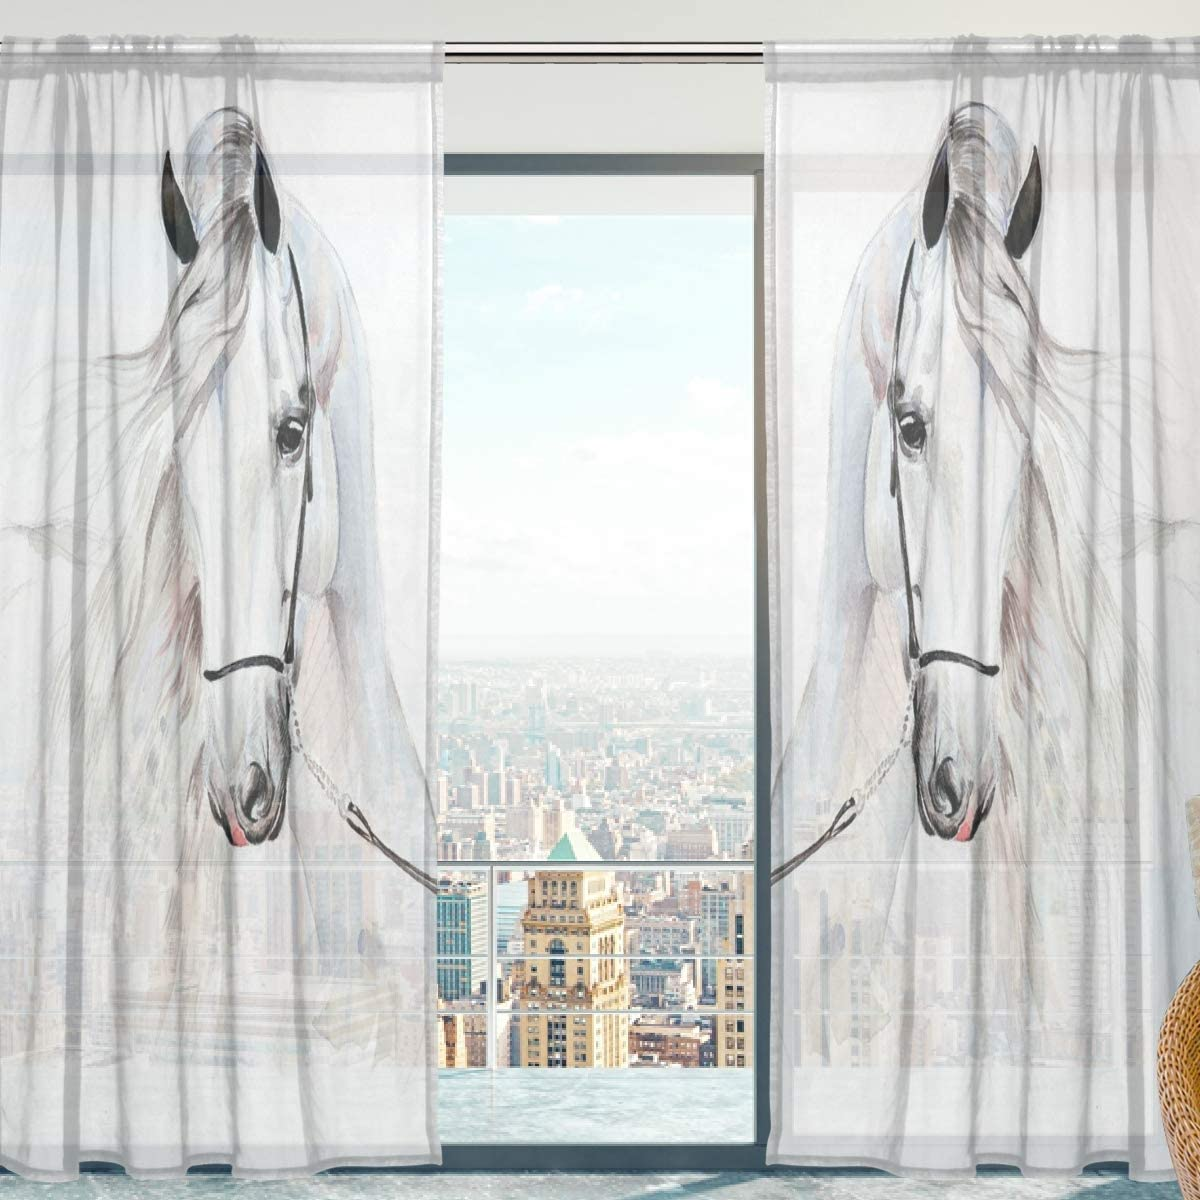 senya Sheer Voile Curtains, White Horse Soft Sheer Curtains for Bedroom Living Room 84 Inches Long 2 Panels